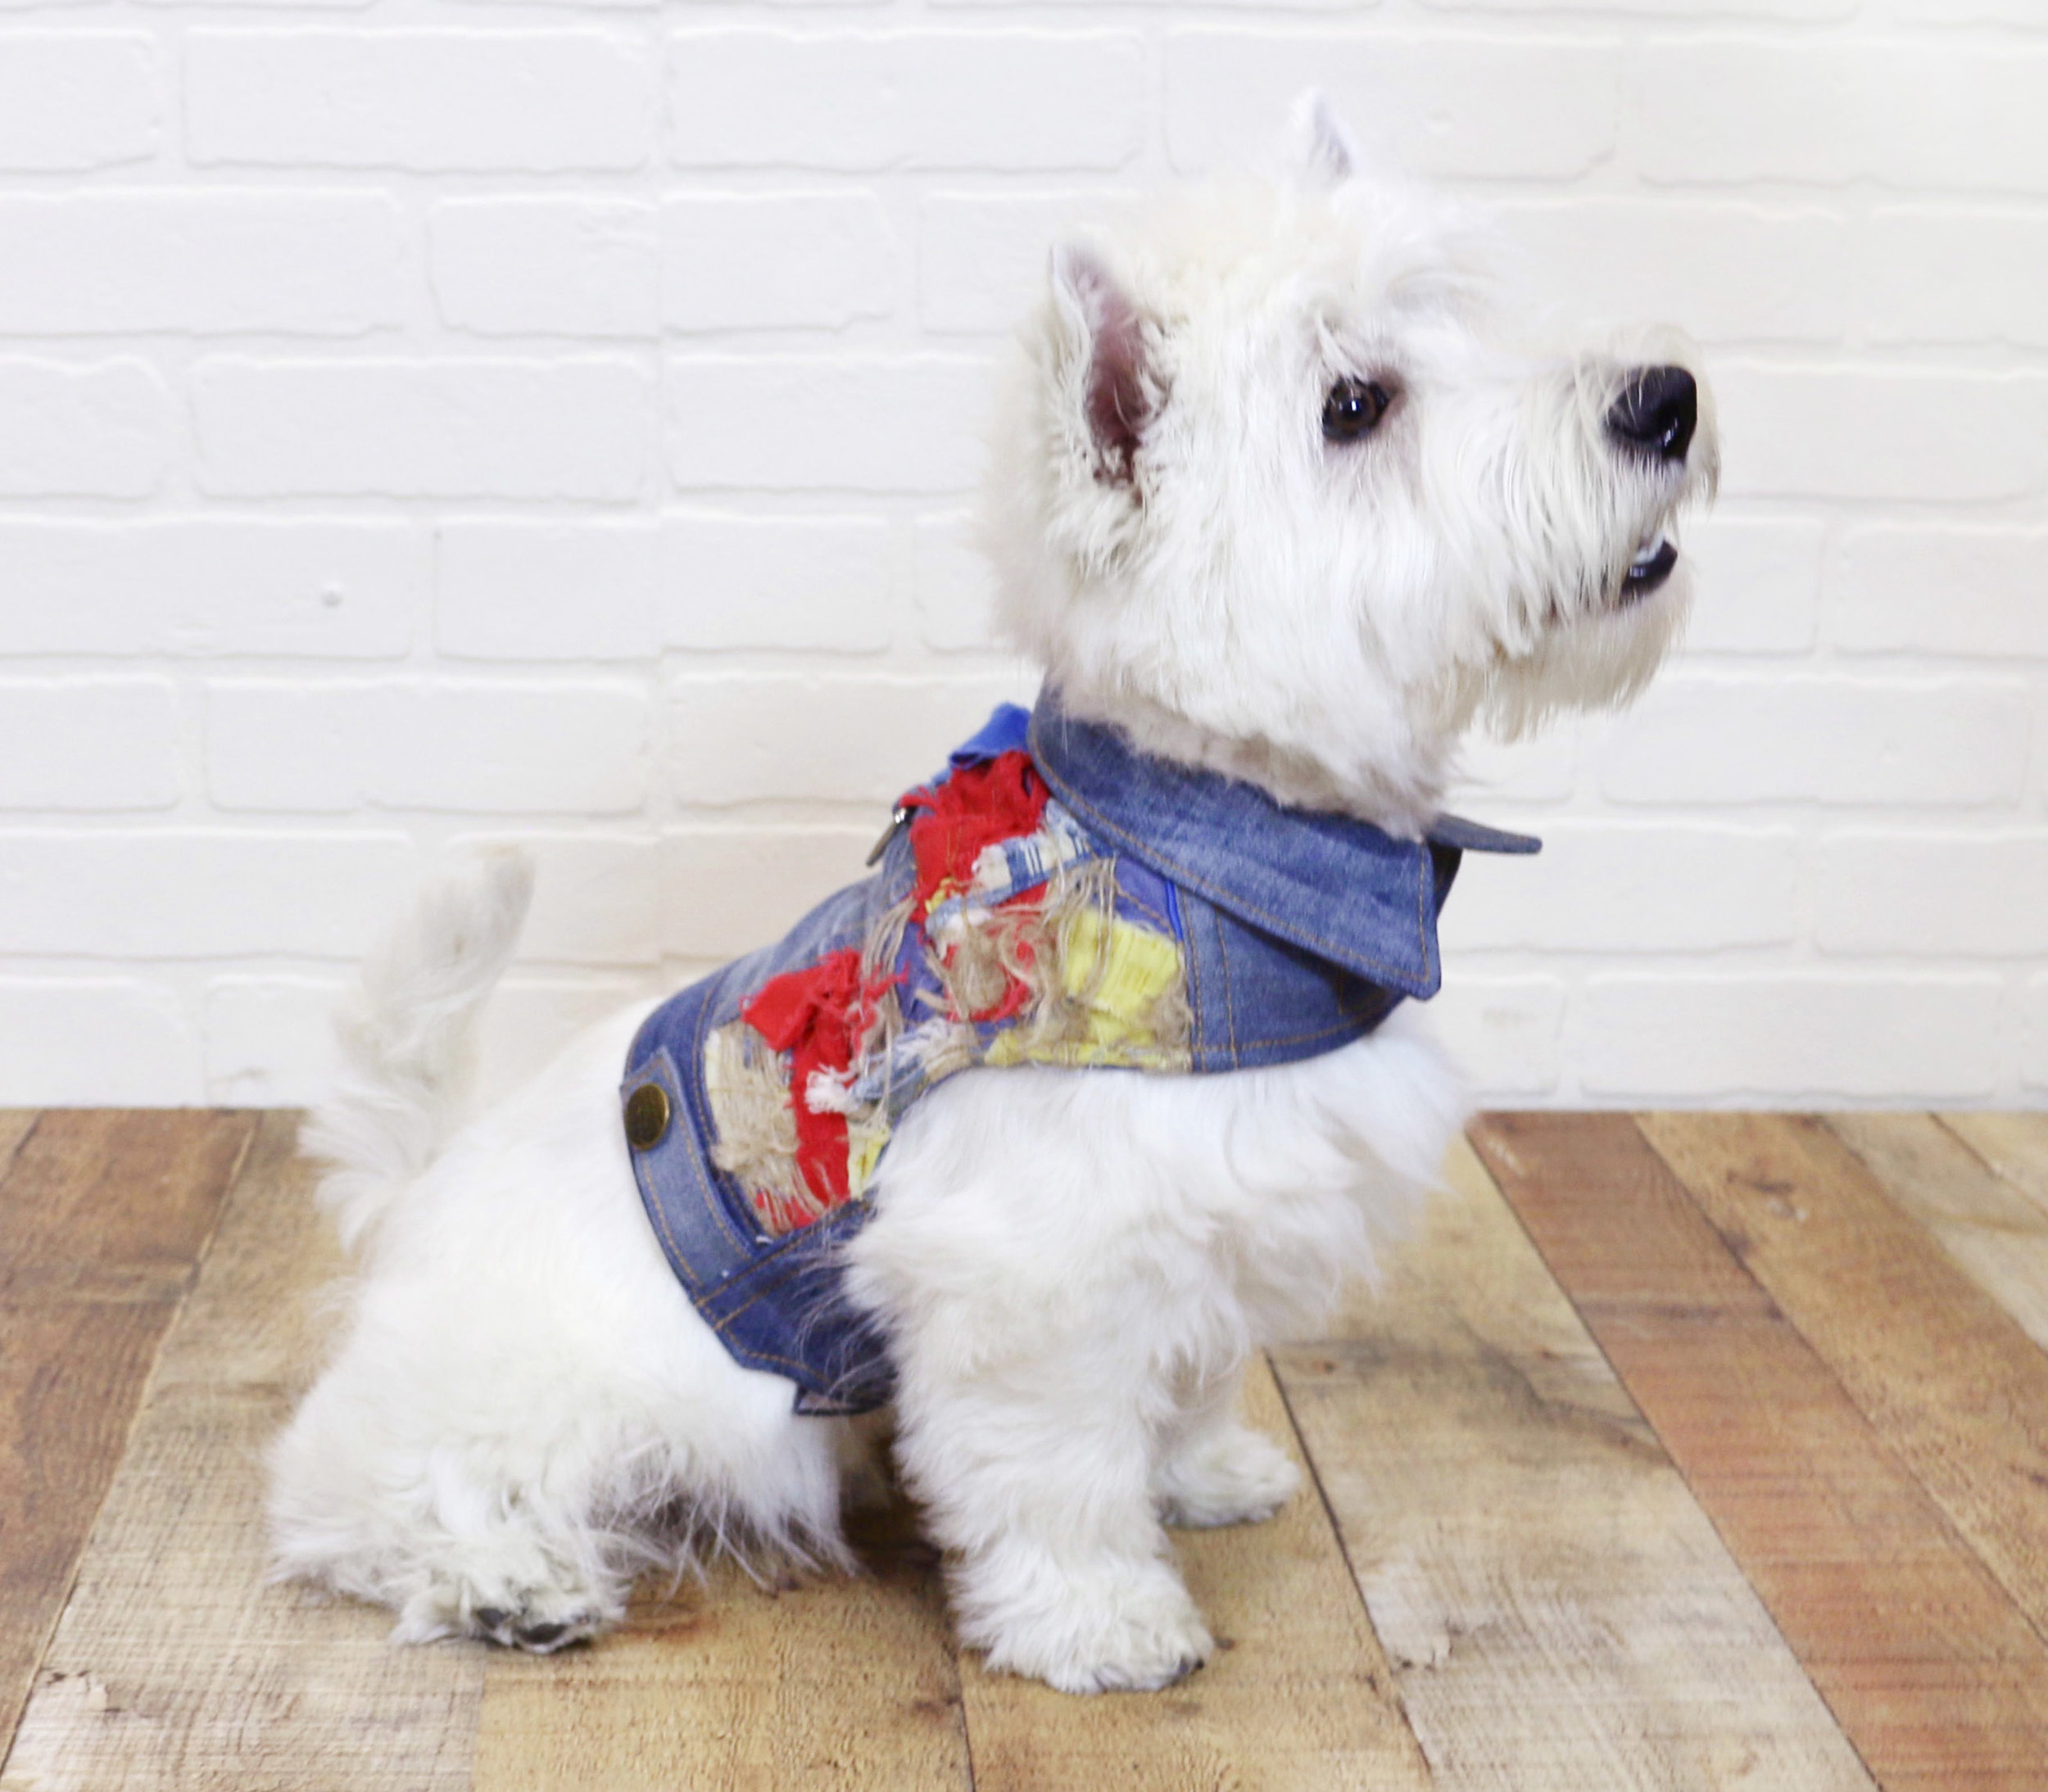 Wilbur is wearing the LOUEY style jacket with a Tattered textile application.